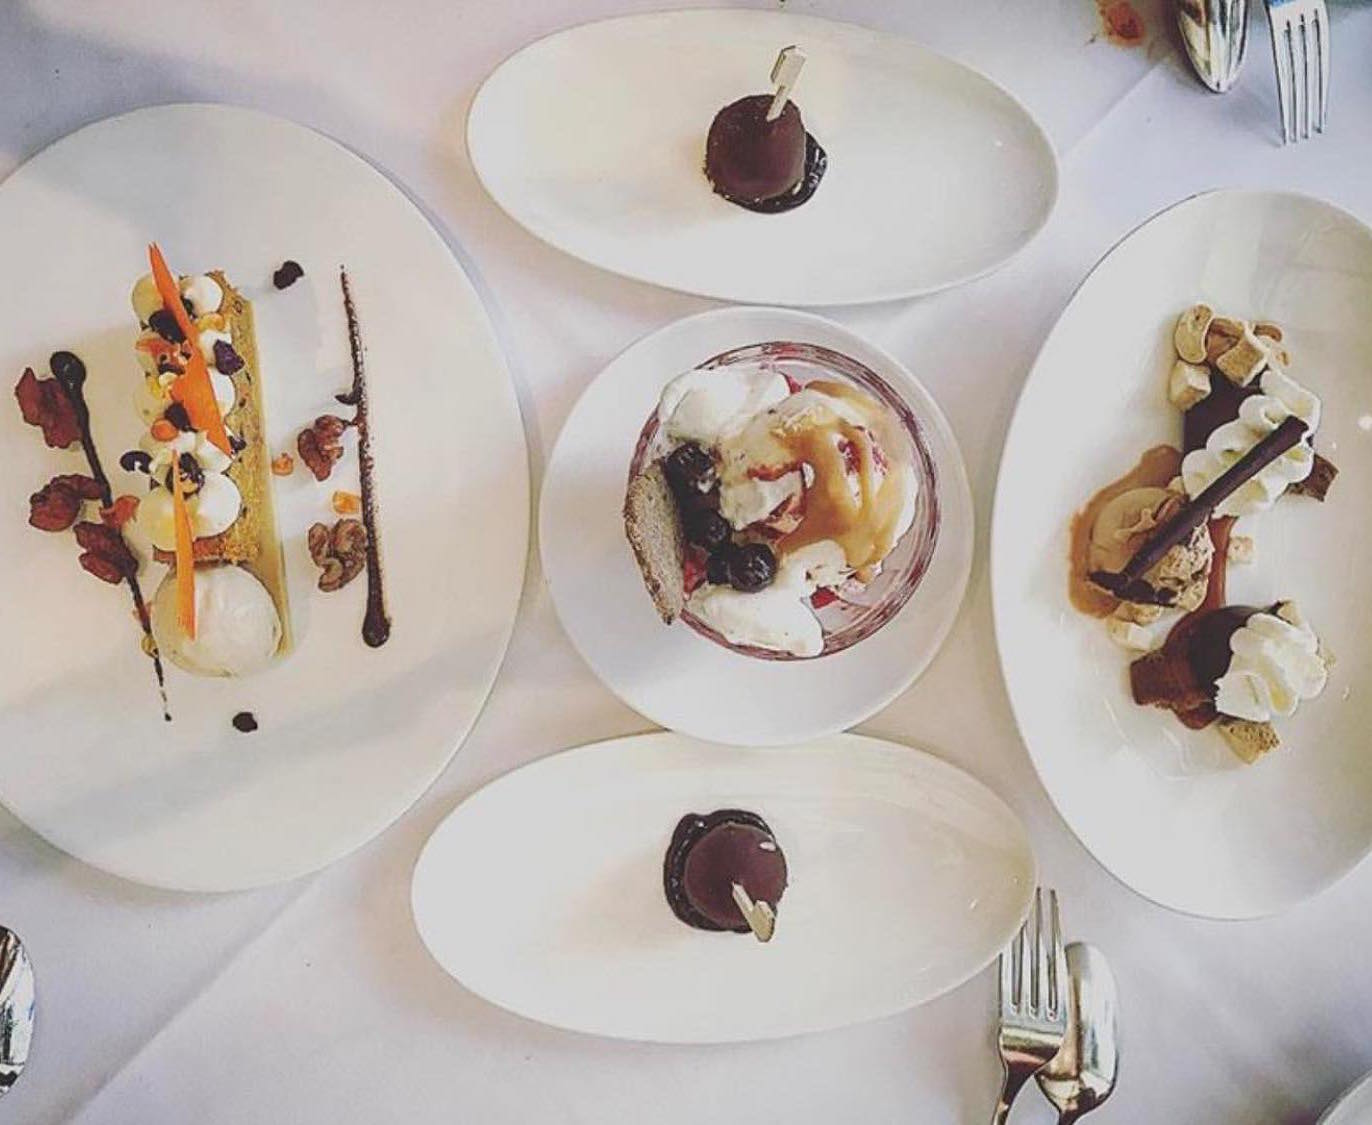 A spread of dessert at Boulevard